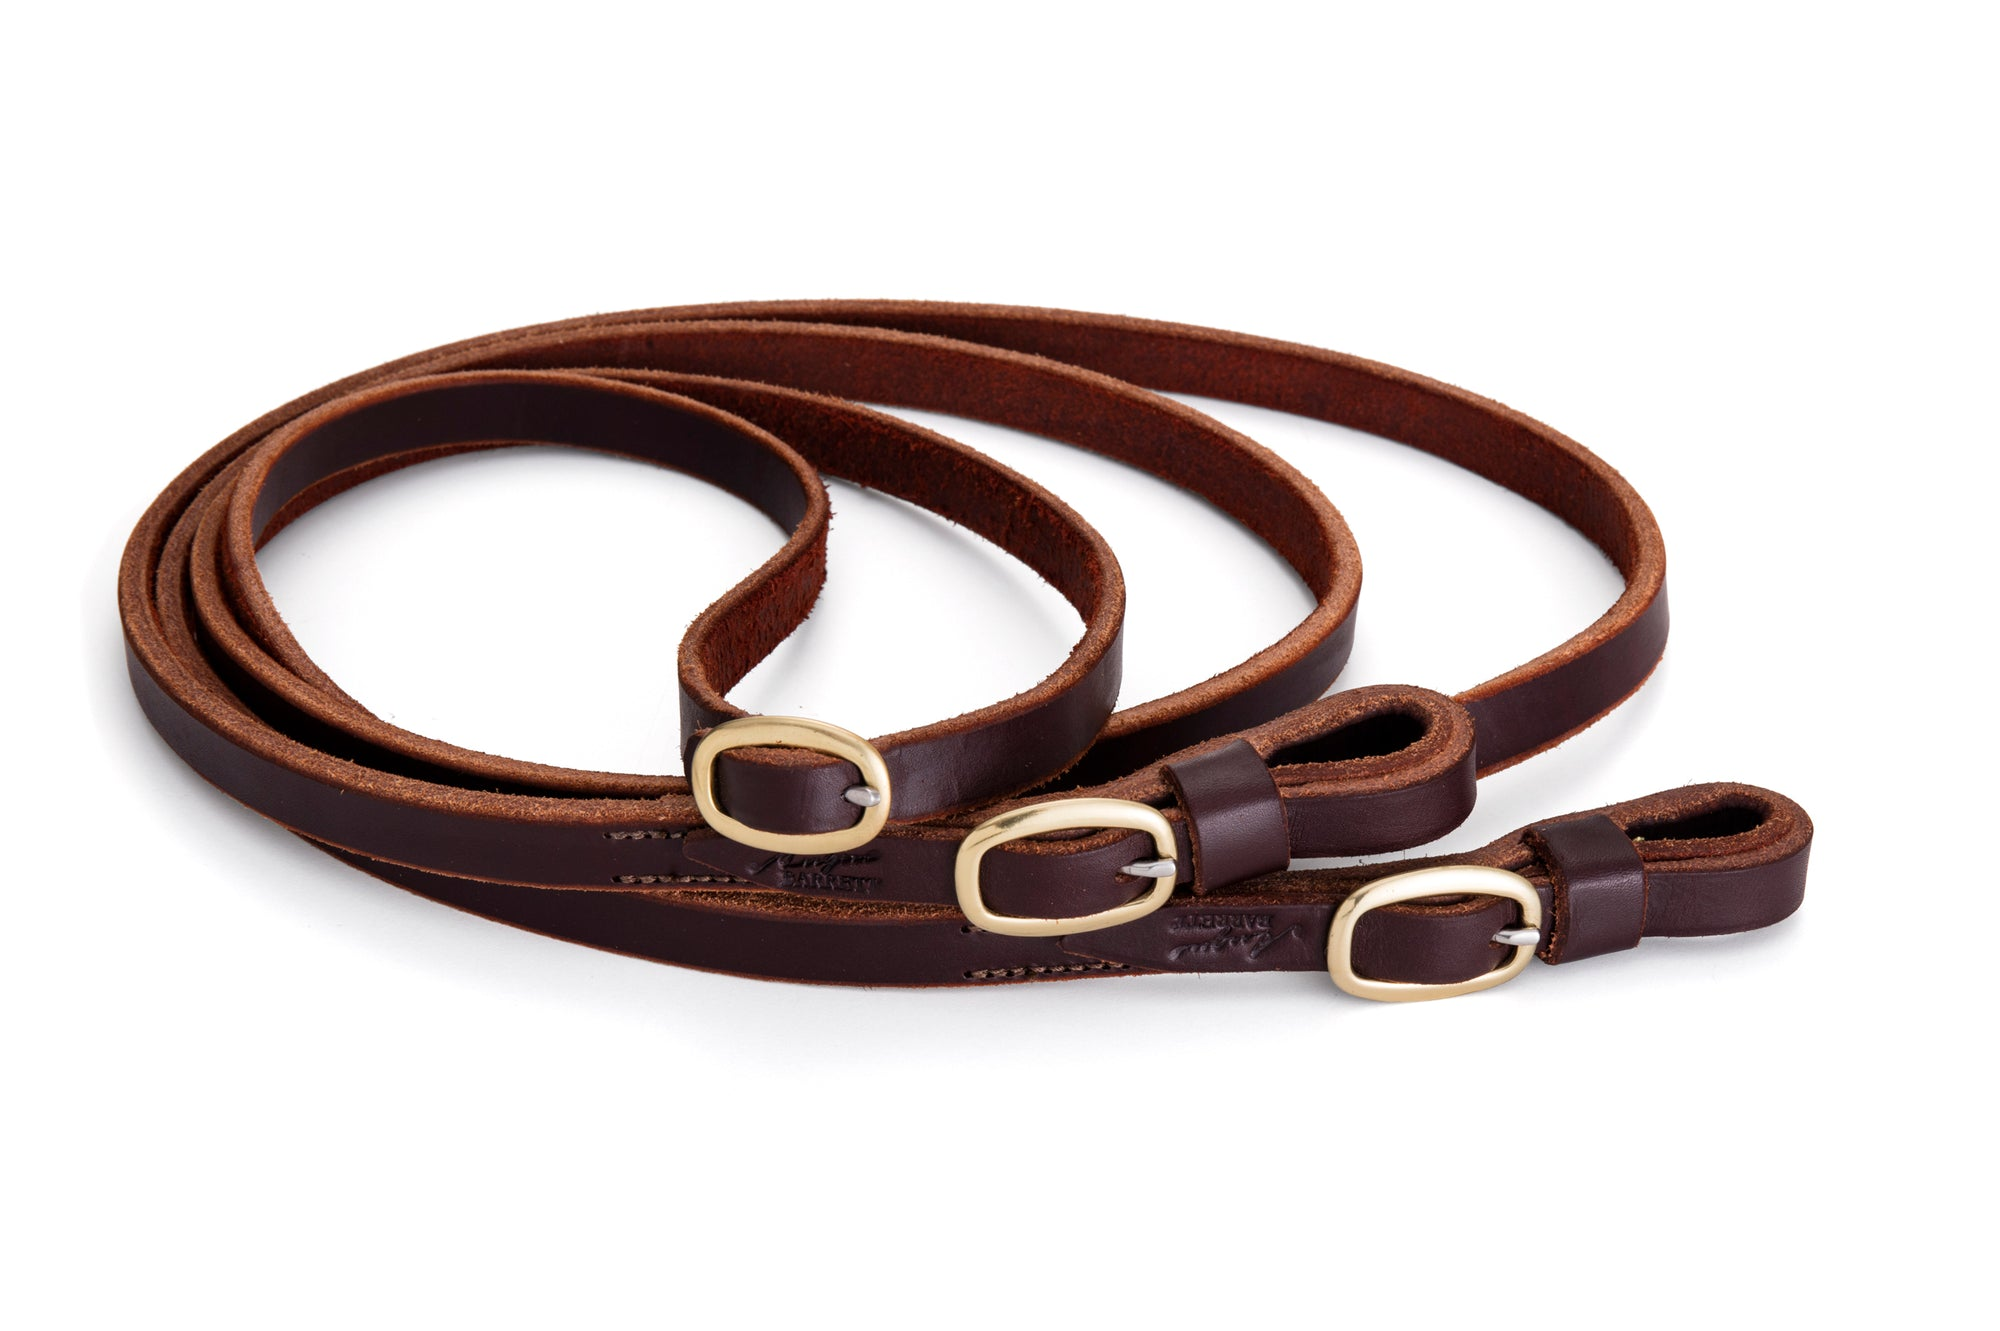 Angus Barrett Joined Reins in Dark Natural with brass buckles